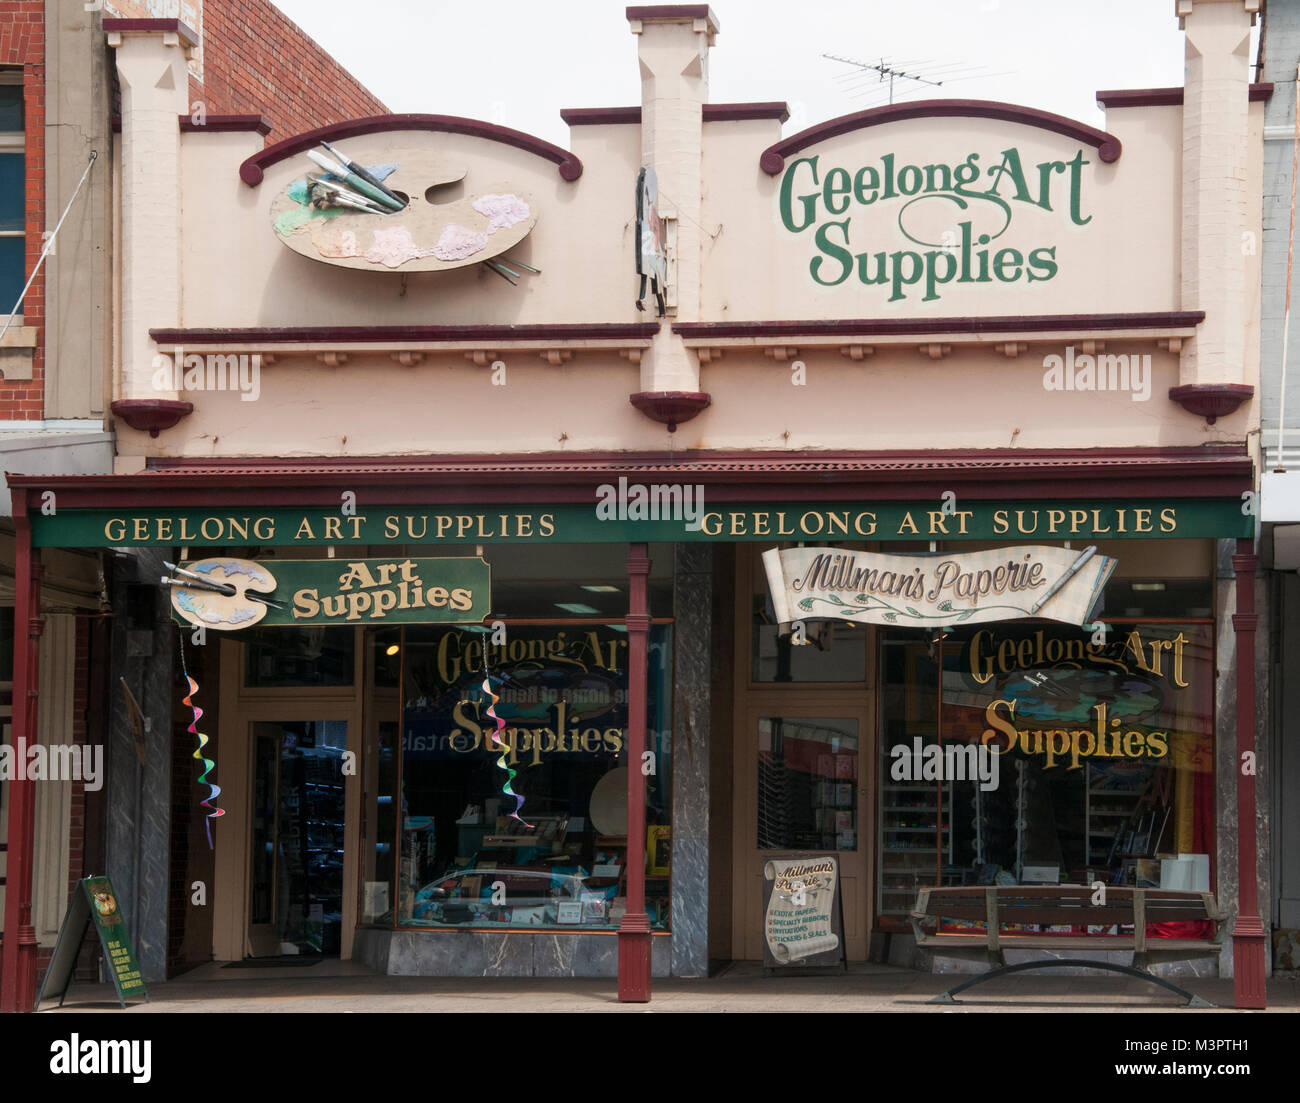 Geelong Art Supplies store occupies one of a group of heritage commercial buildings on Ryrie Street, Geelong, Victoria, - Stock Image